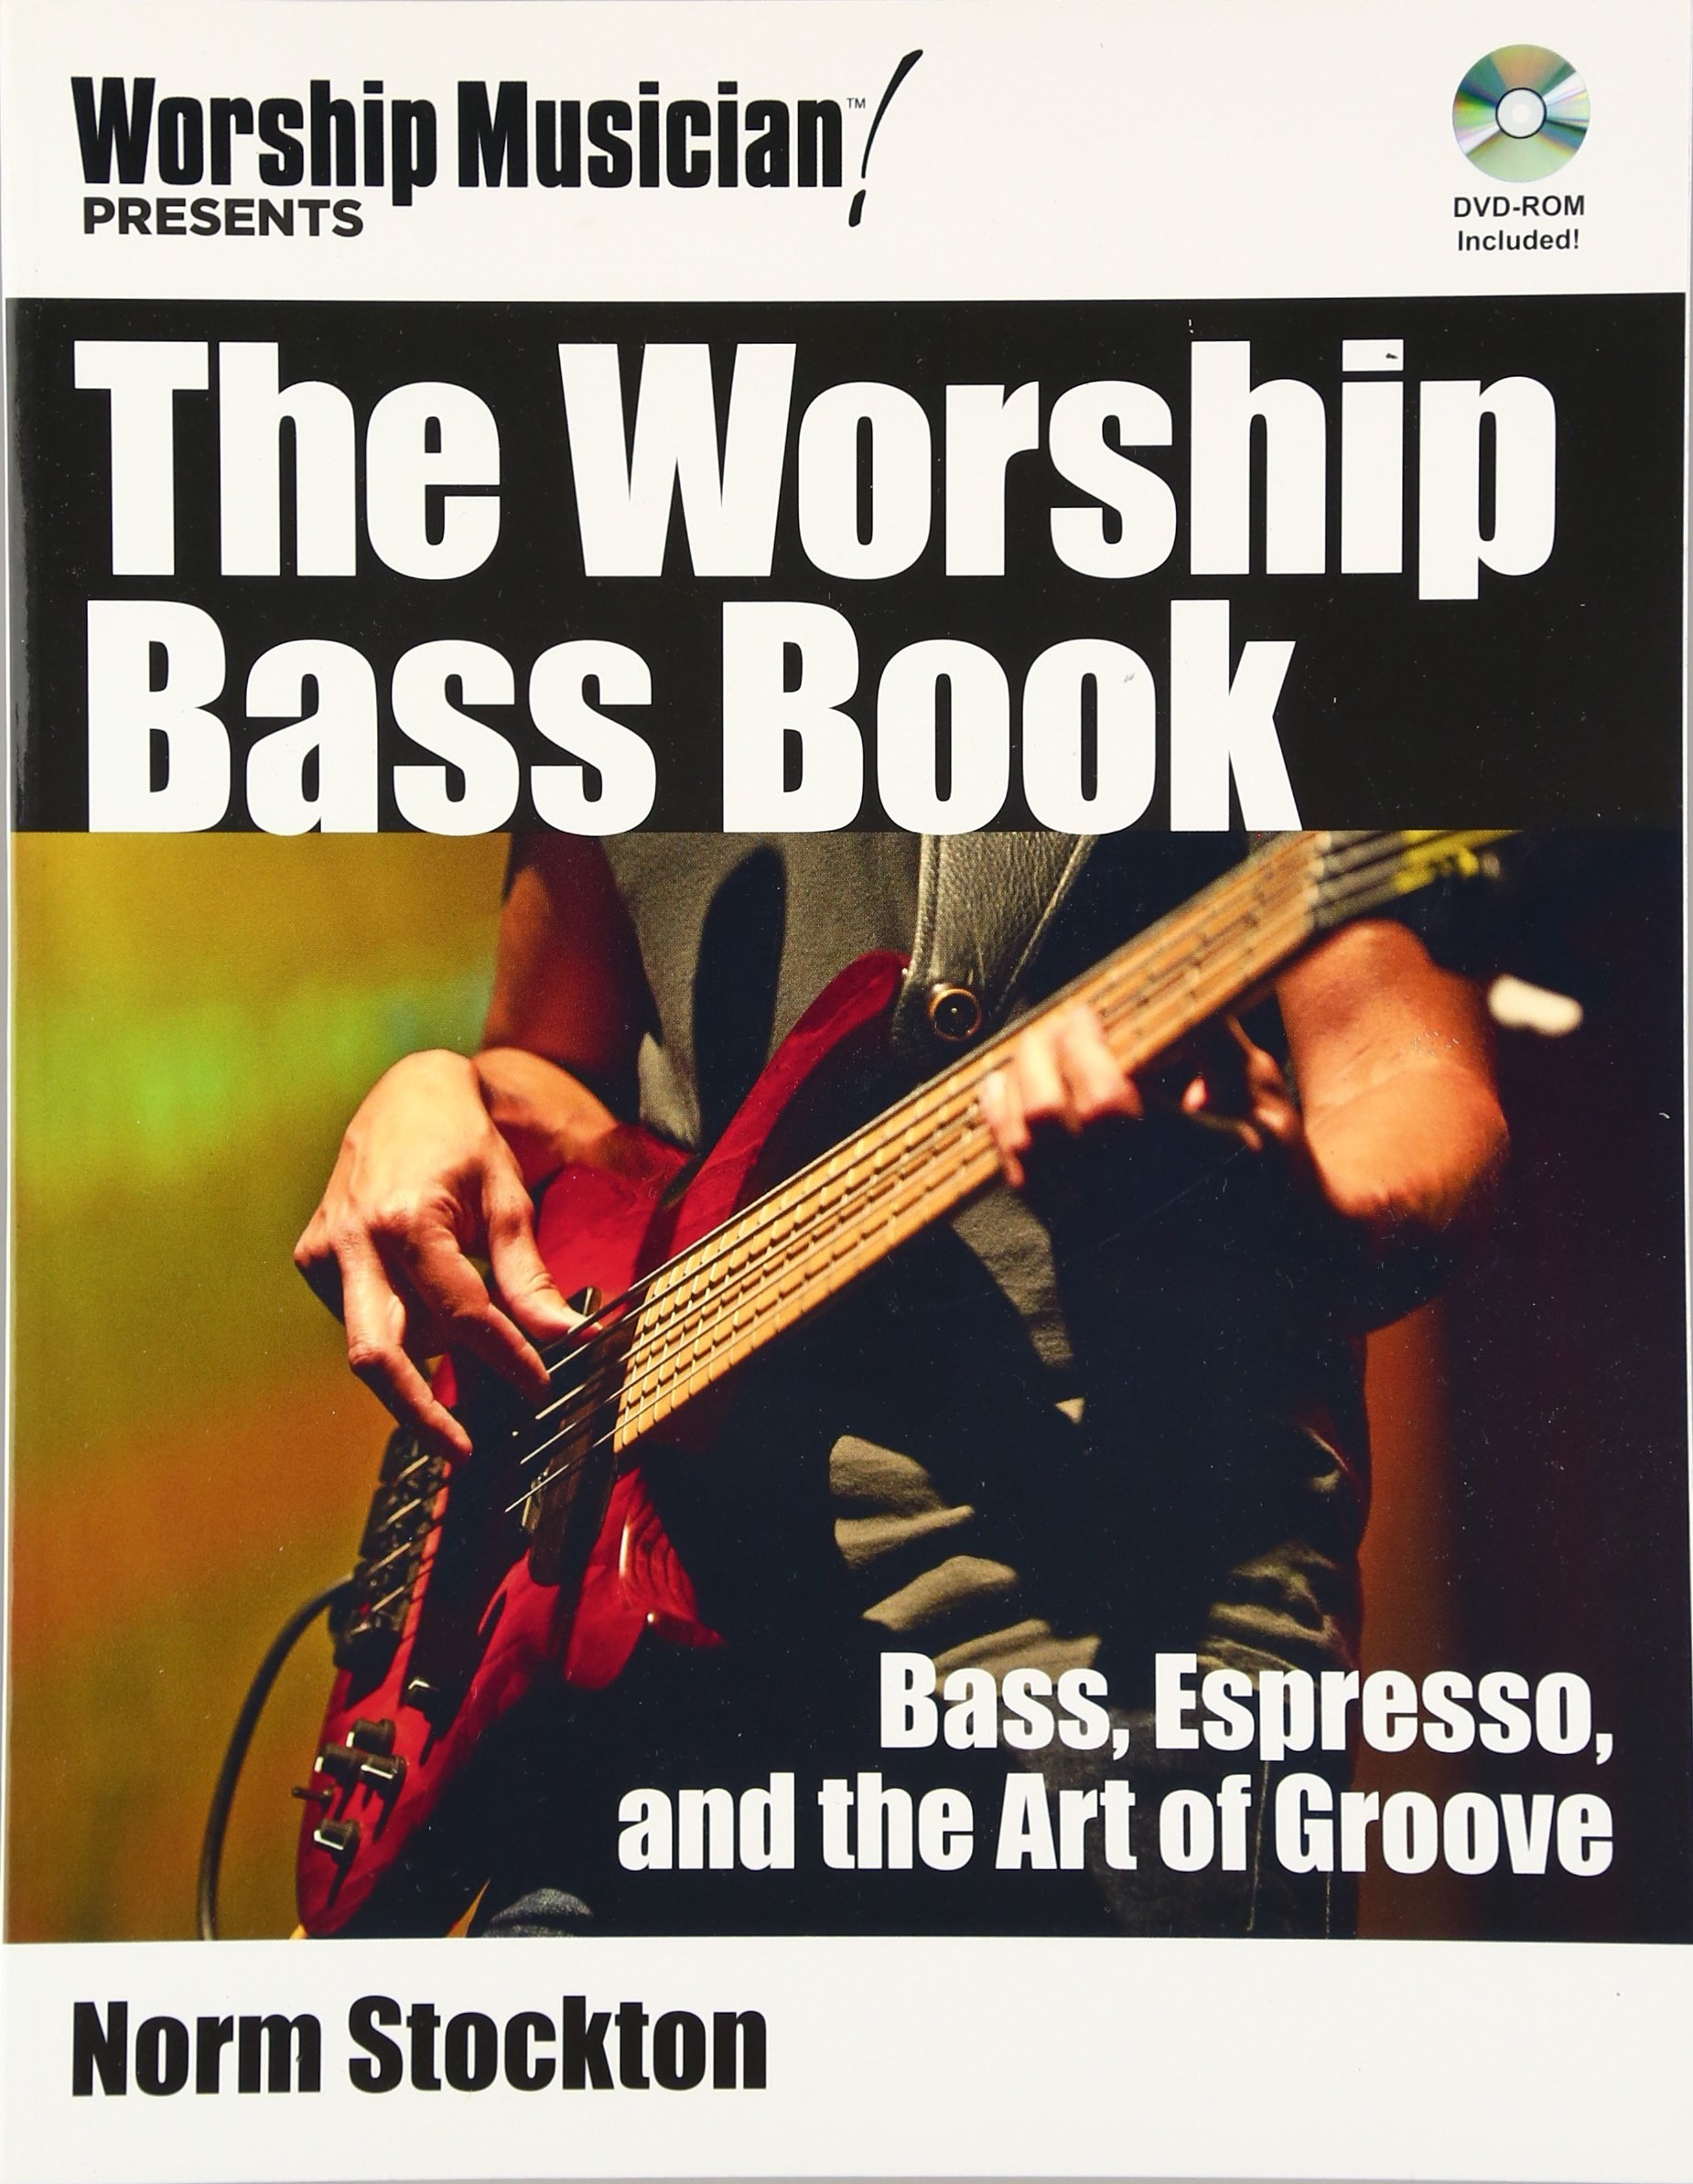 Read Online The Worship Bass Book: Bass, Espresso, and the Art of Groove (Book/DVD-ROM)) (Worship Musician Presents...) pdf epub